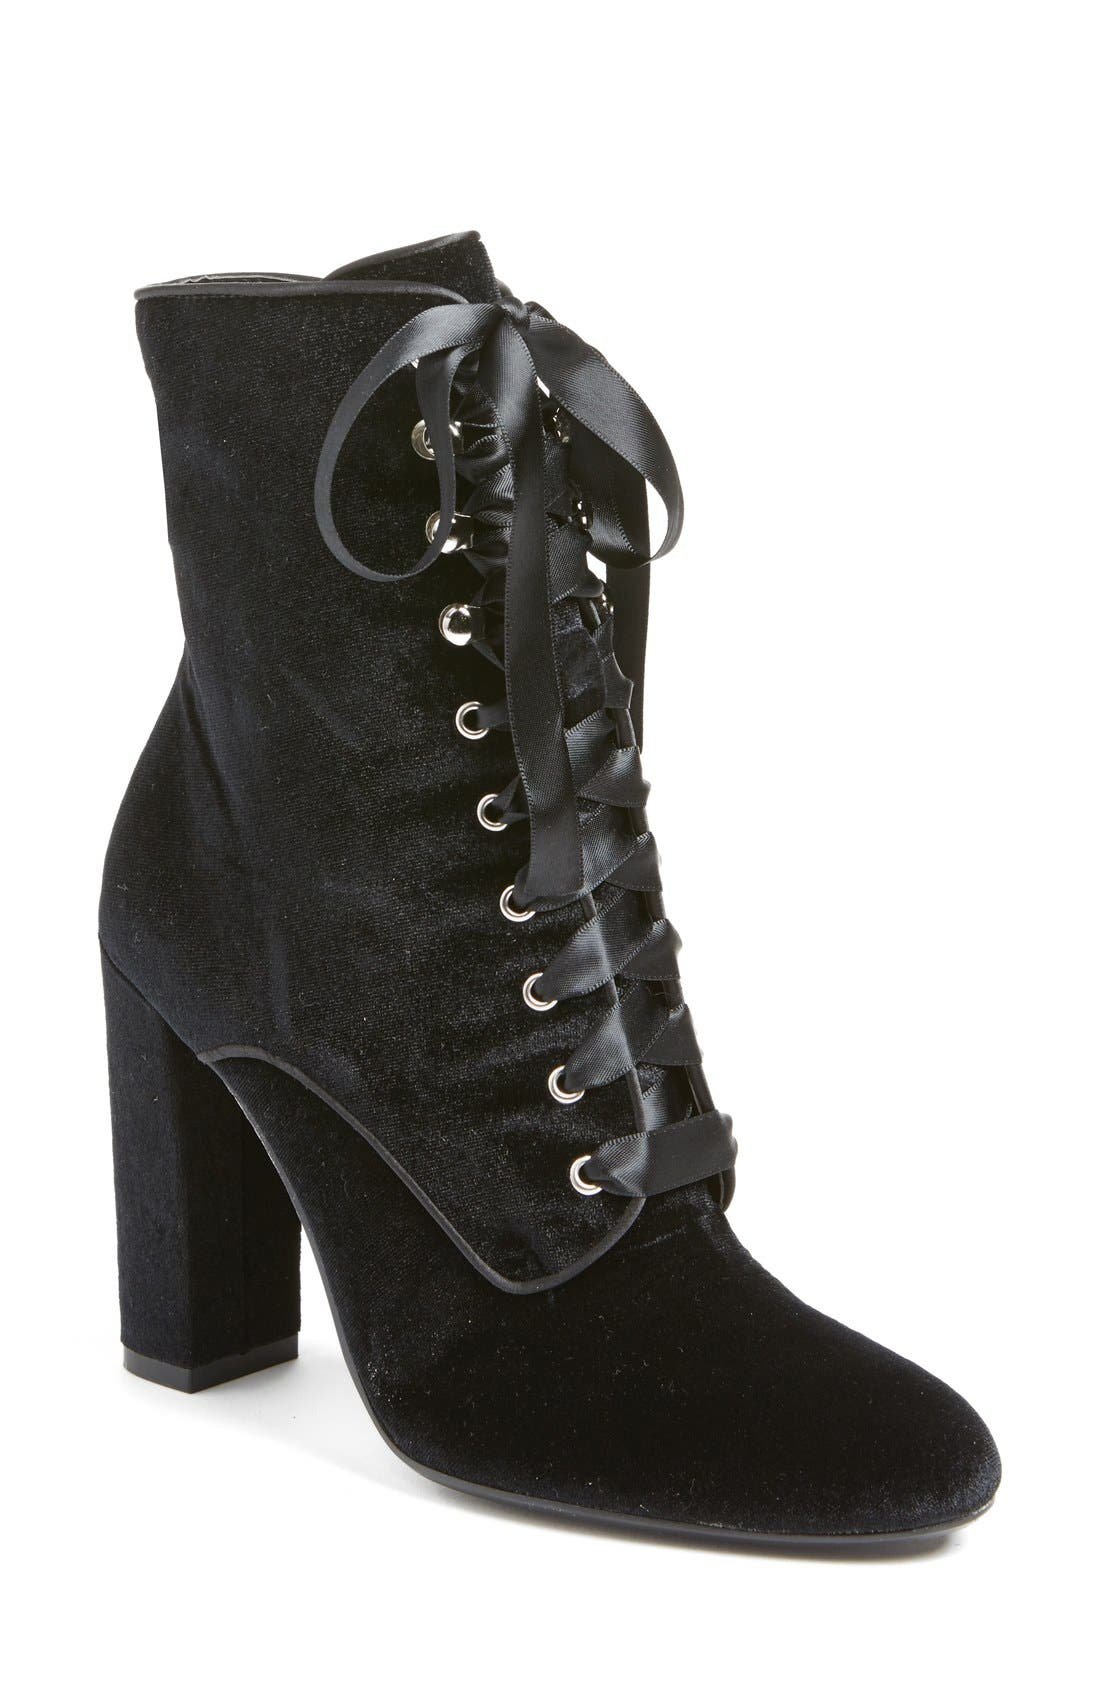 Alternate Image 1 Selected - Steve Madden 'Evolved' Lace-Up Bootie (Women)